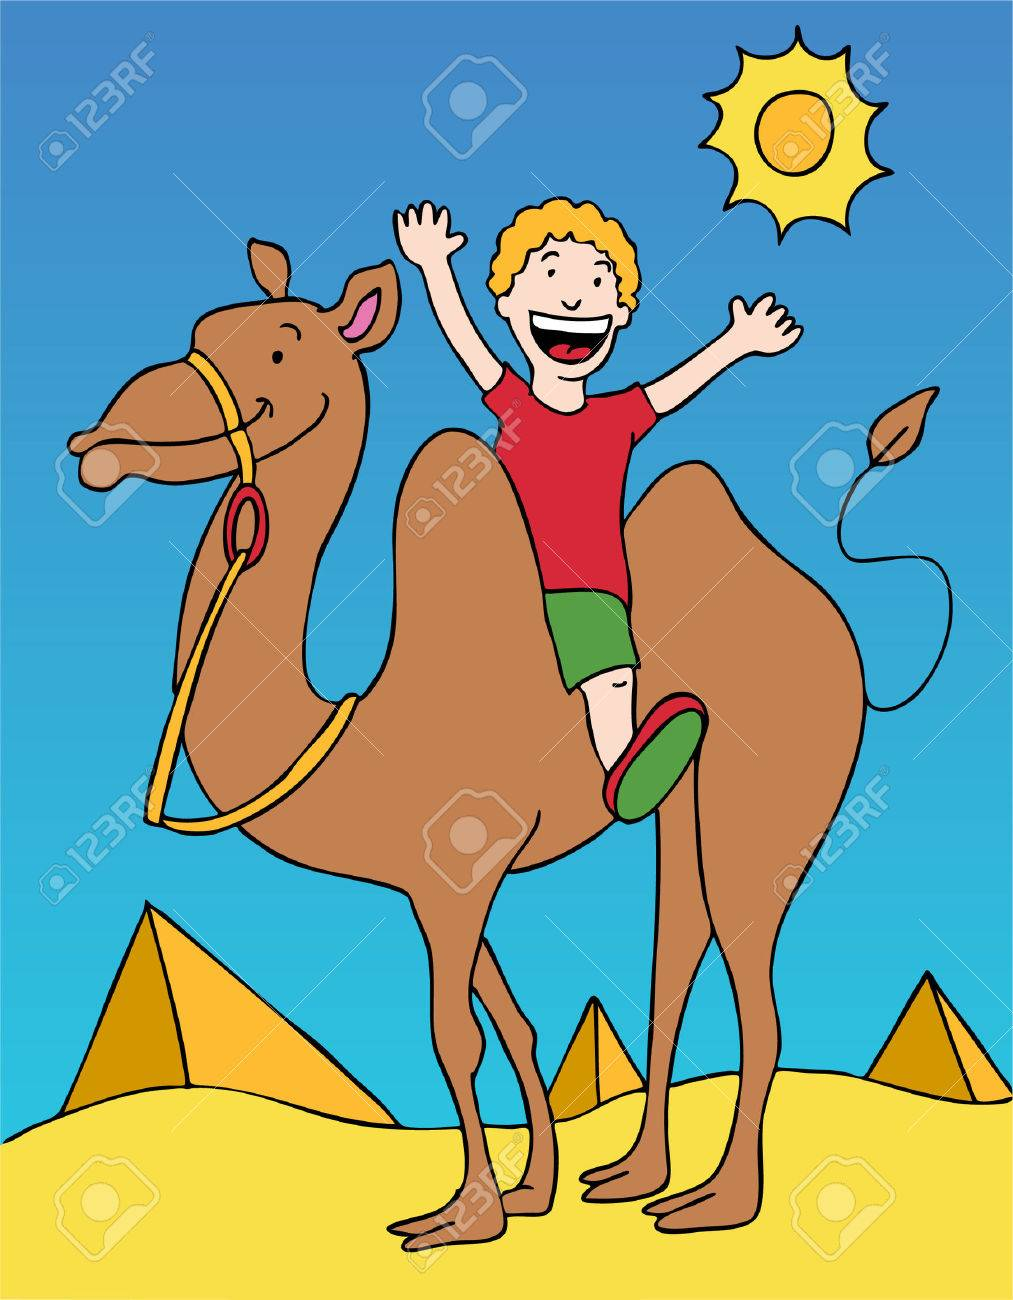 Camel Rider in the desert with two pyramids. Stock Vector - 5709981